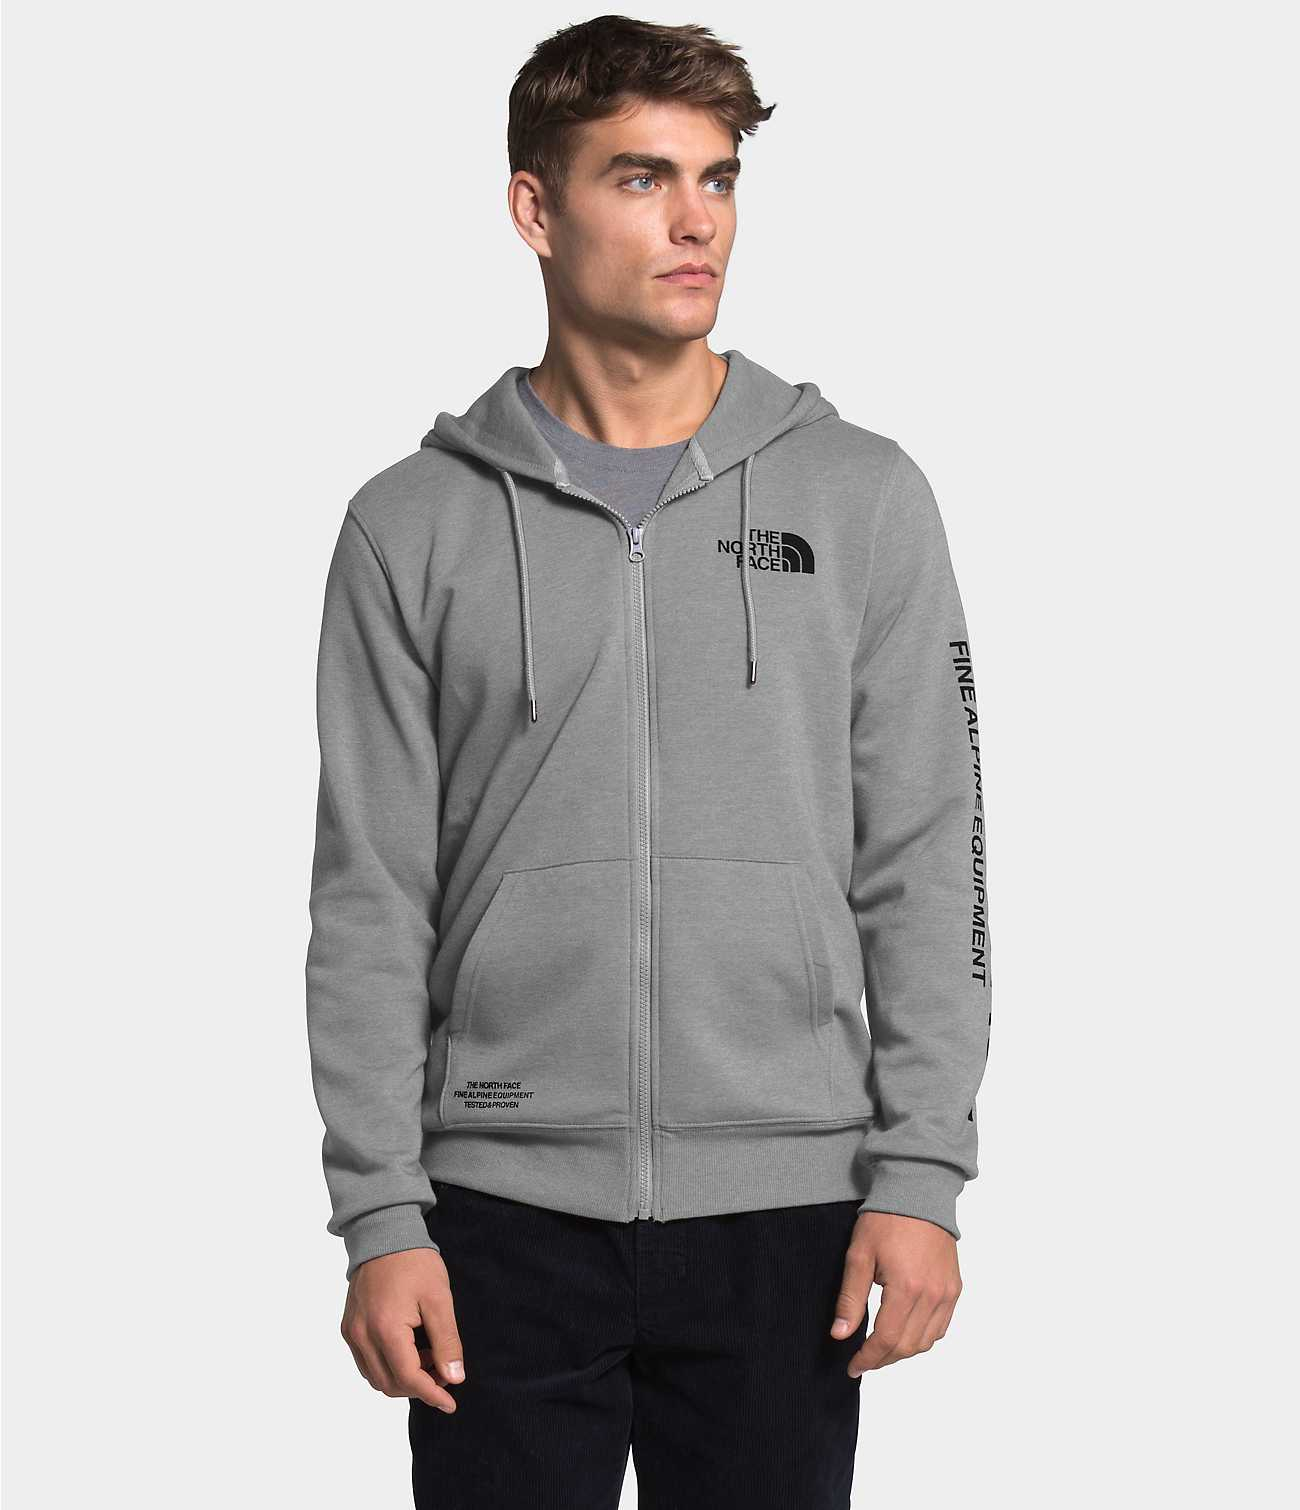 THE NORTH FACE Men's Outerwear North Face Men's Brand Proud Full Zip Hoodie || David's Clothing